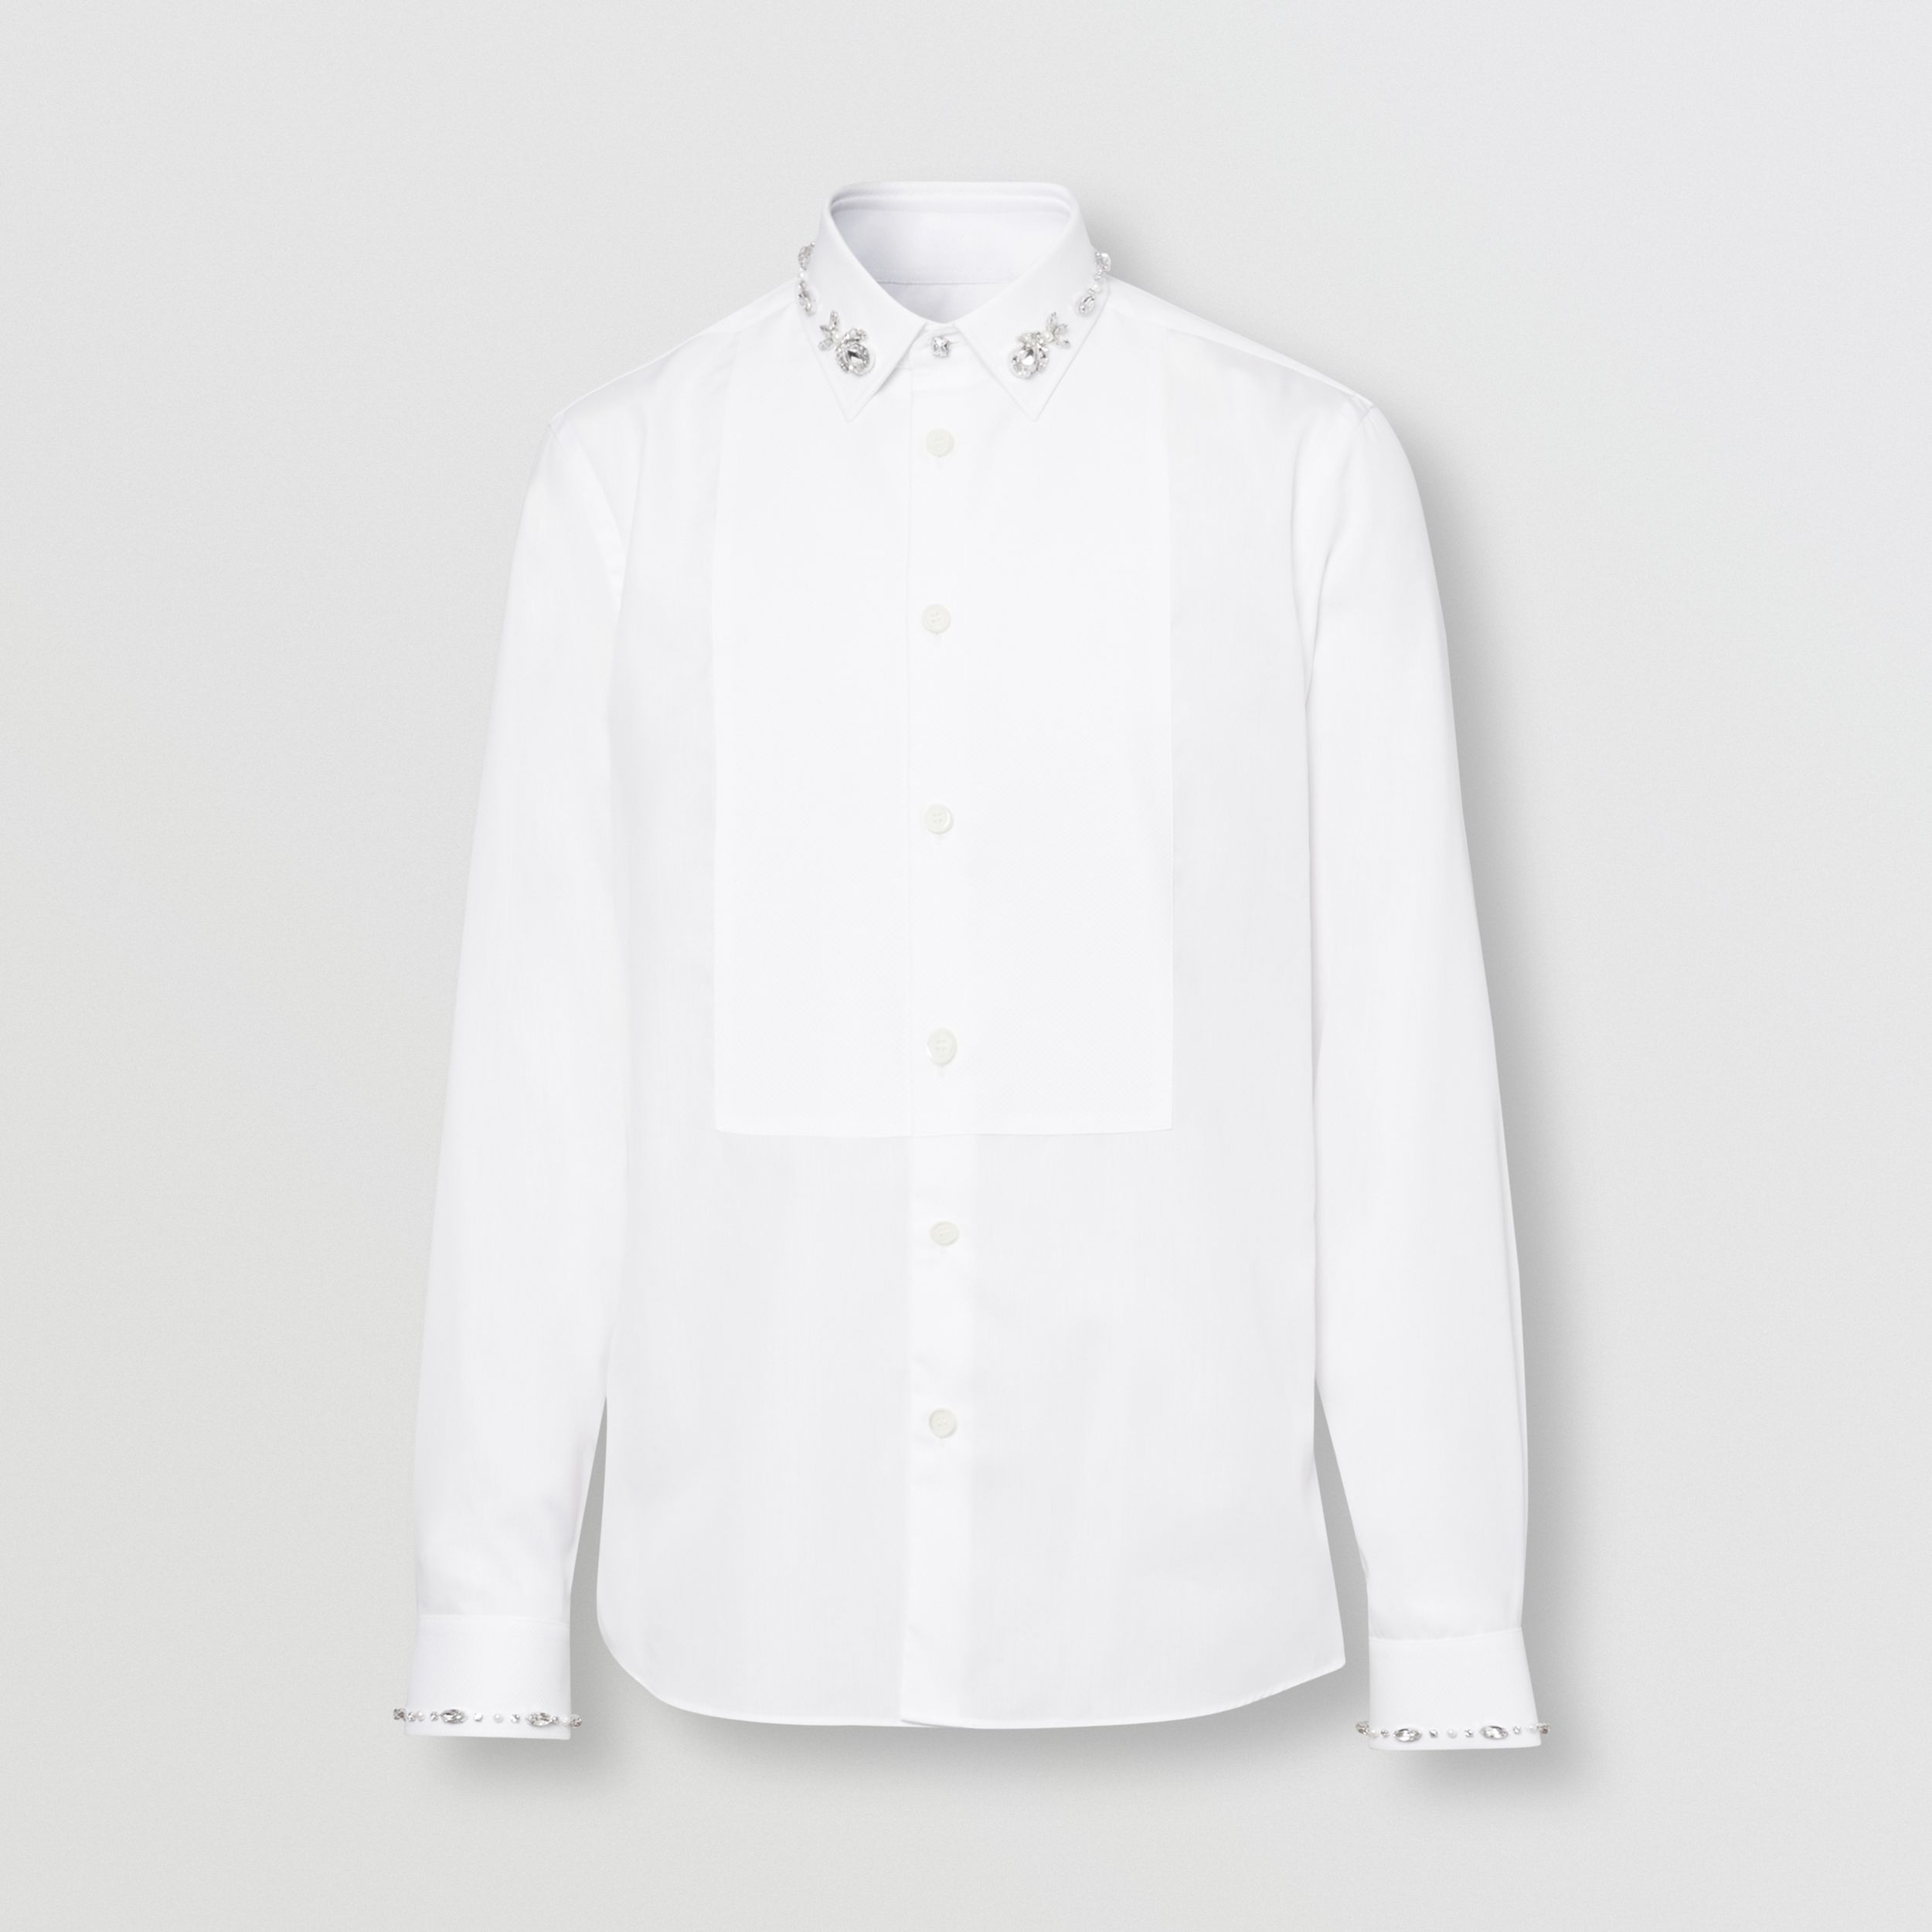 Slim Fit Embellished Cotton Poplin Shirt in White - Men | Burberry United Kingdom - 4